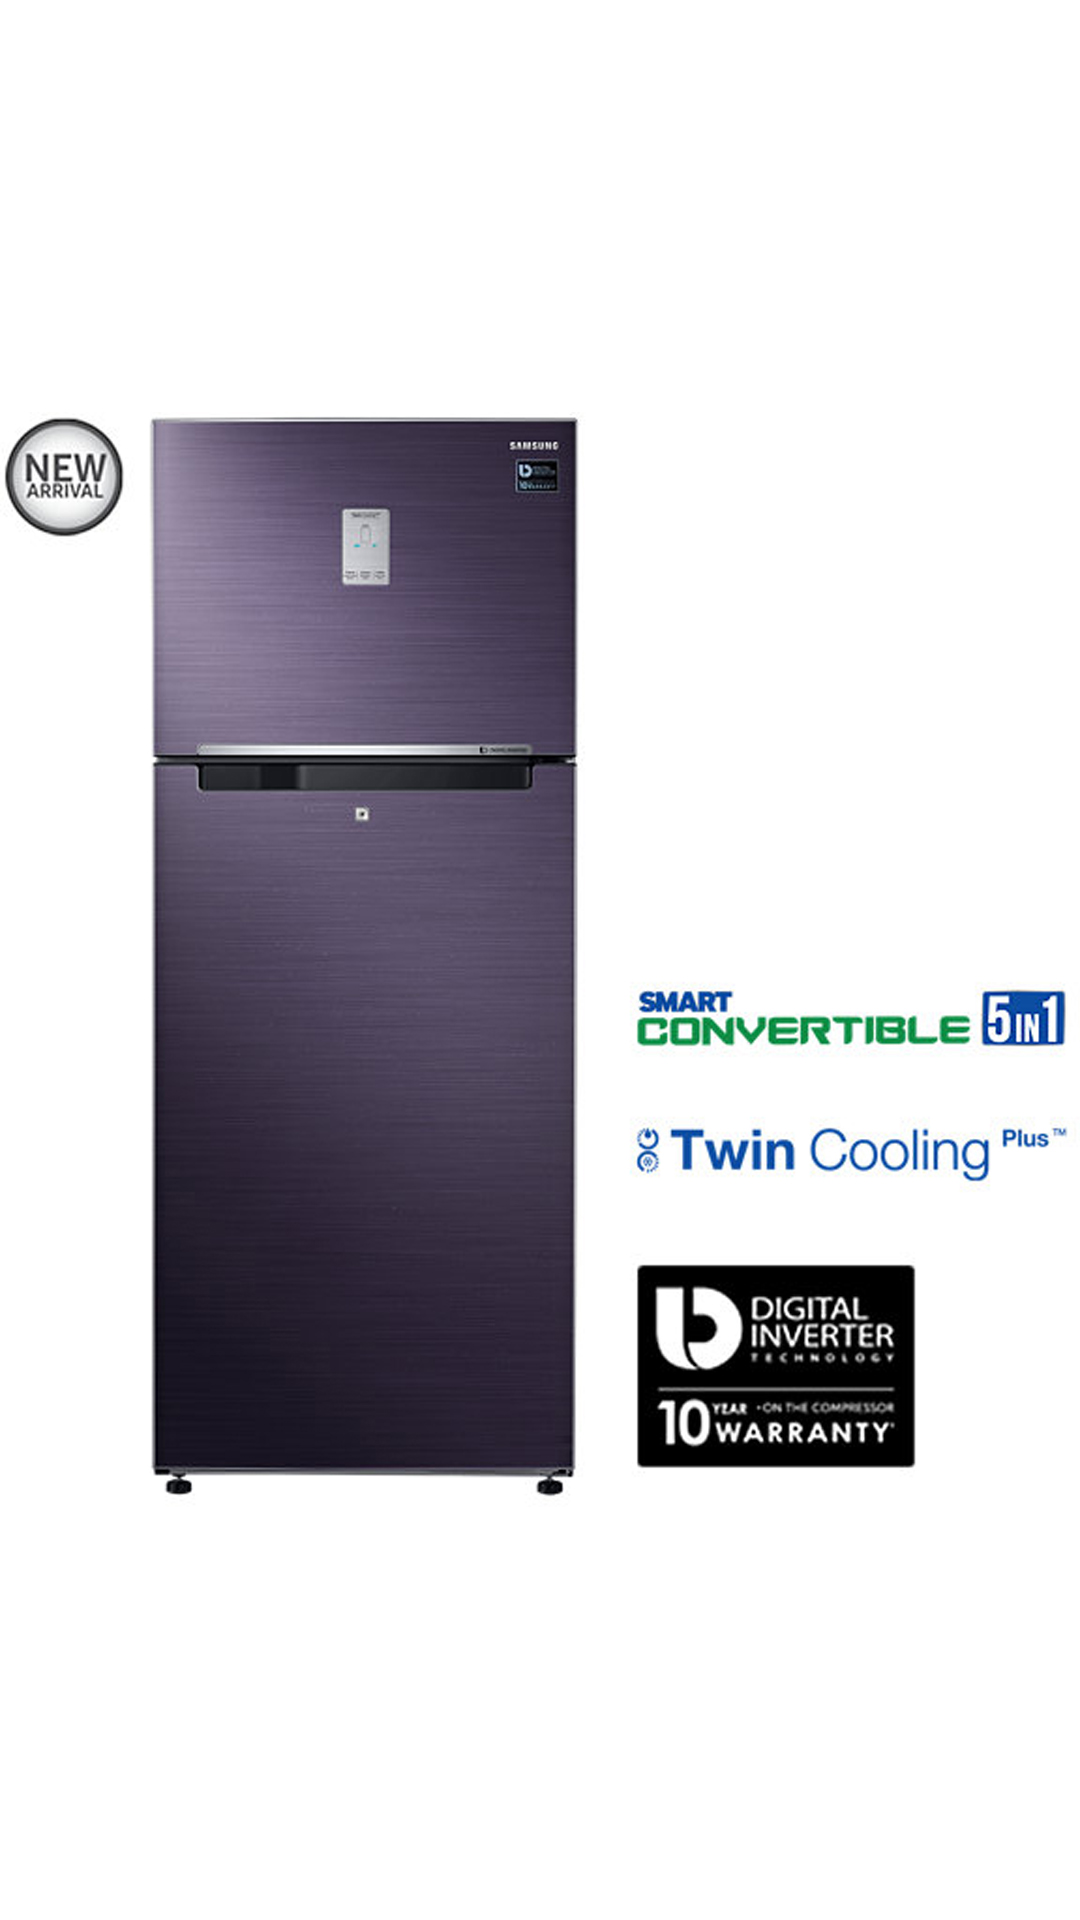 Samsung 465 L Double Door Refrigerator (Pebble Blue) - RT47K6238UT